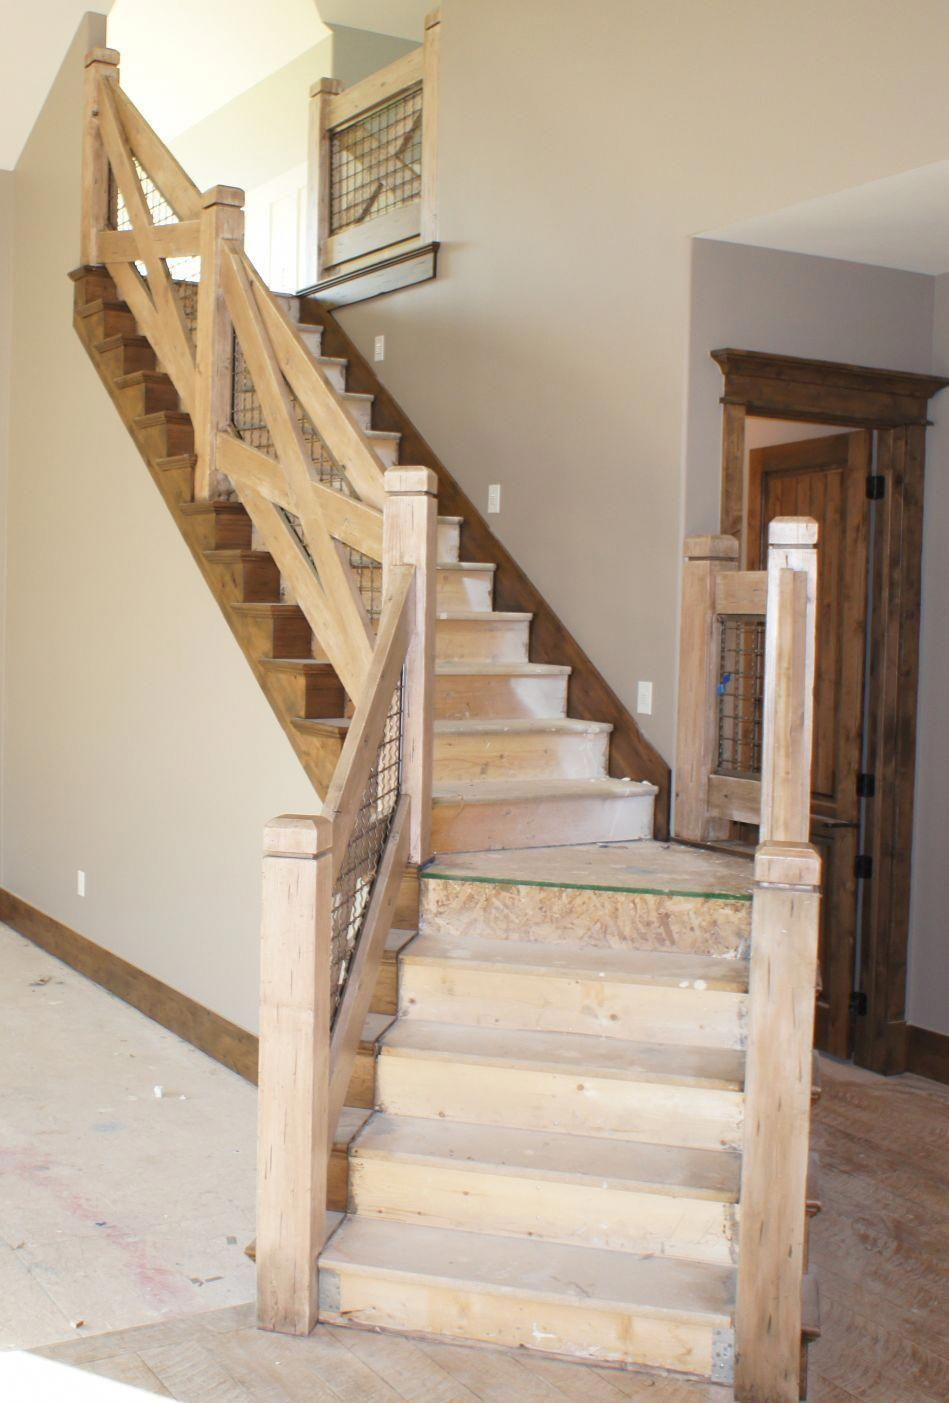 Best Low Cost Stair Railing Ideas 14465 Wooddeckcost 640 x 480